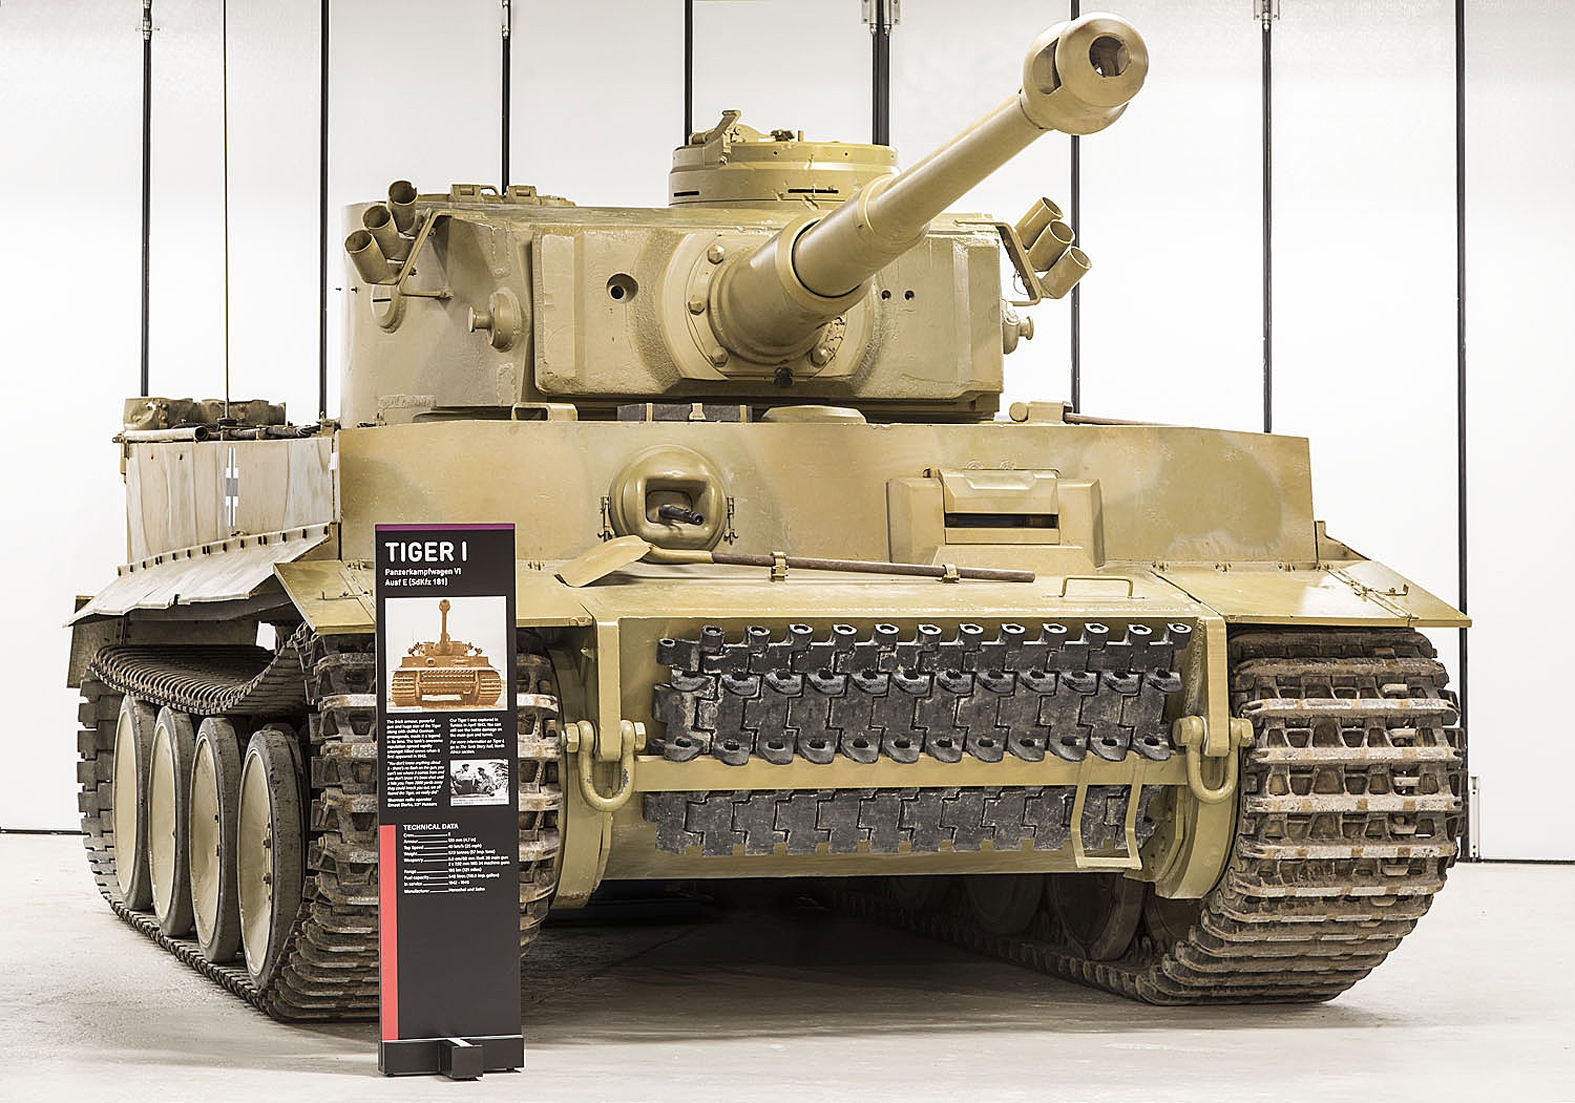 The world's only Tiger I tank will be running at the Tank ...